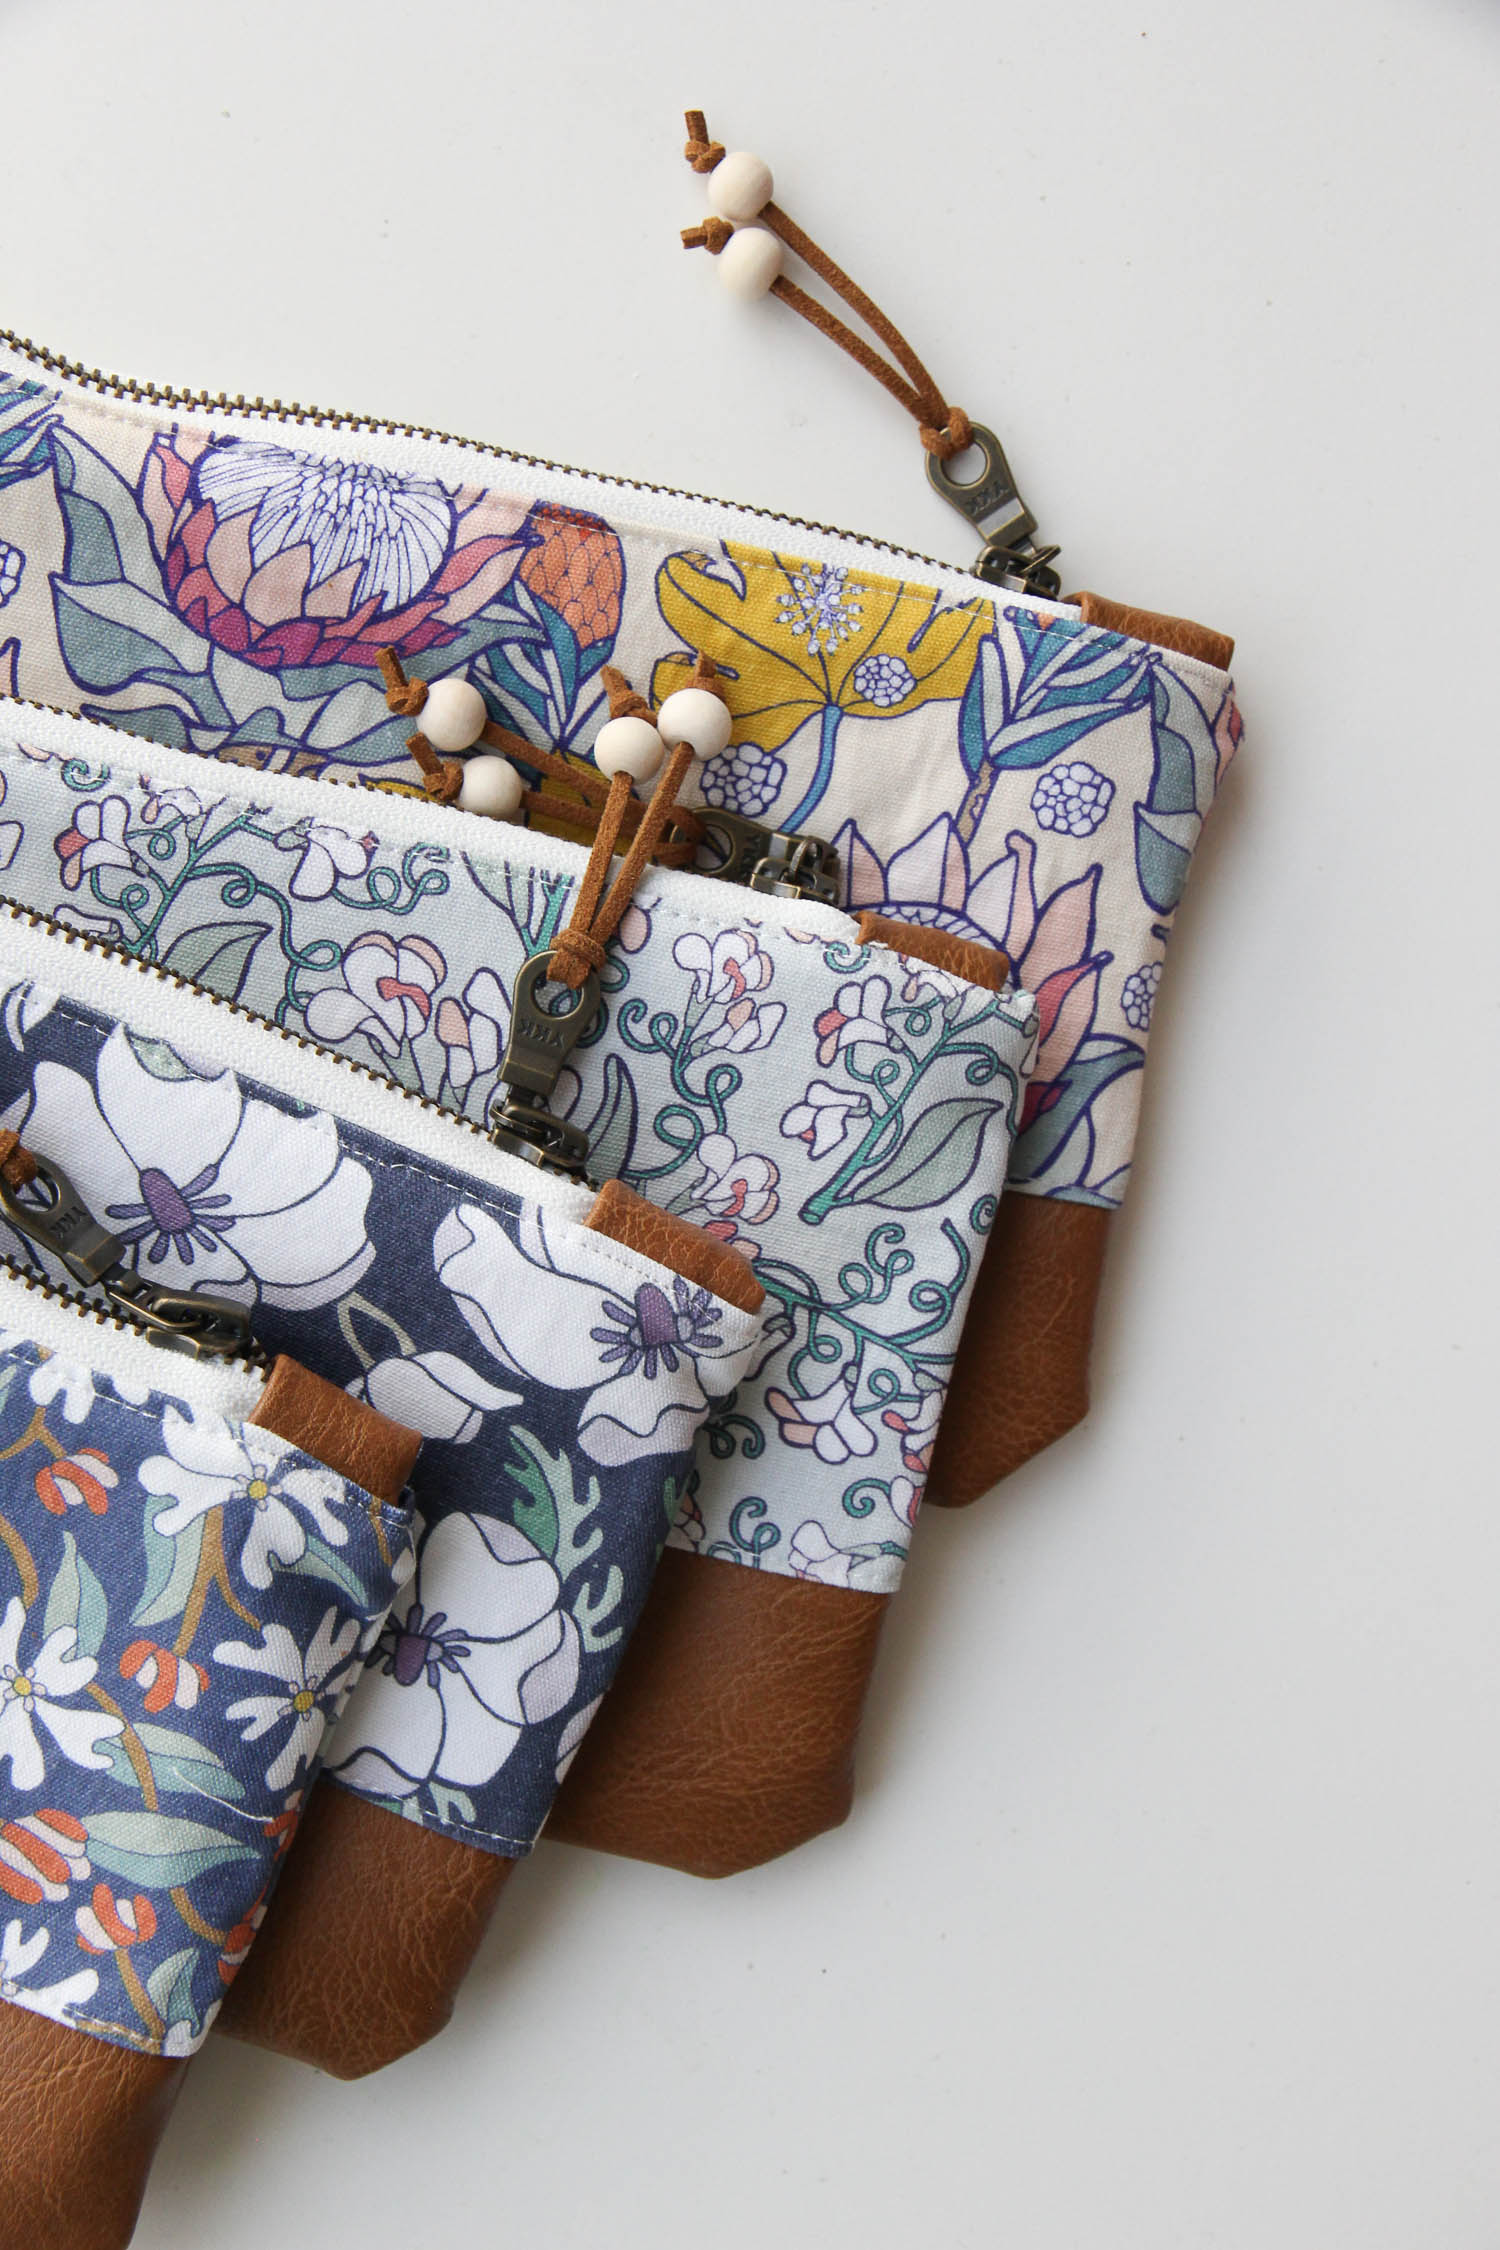 Floral Zip Pouches, Zipper Clutches, Handmade Wallet Bag Accessories from Root & Branch Paper Co.